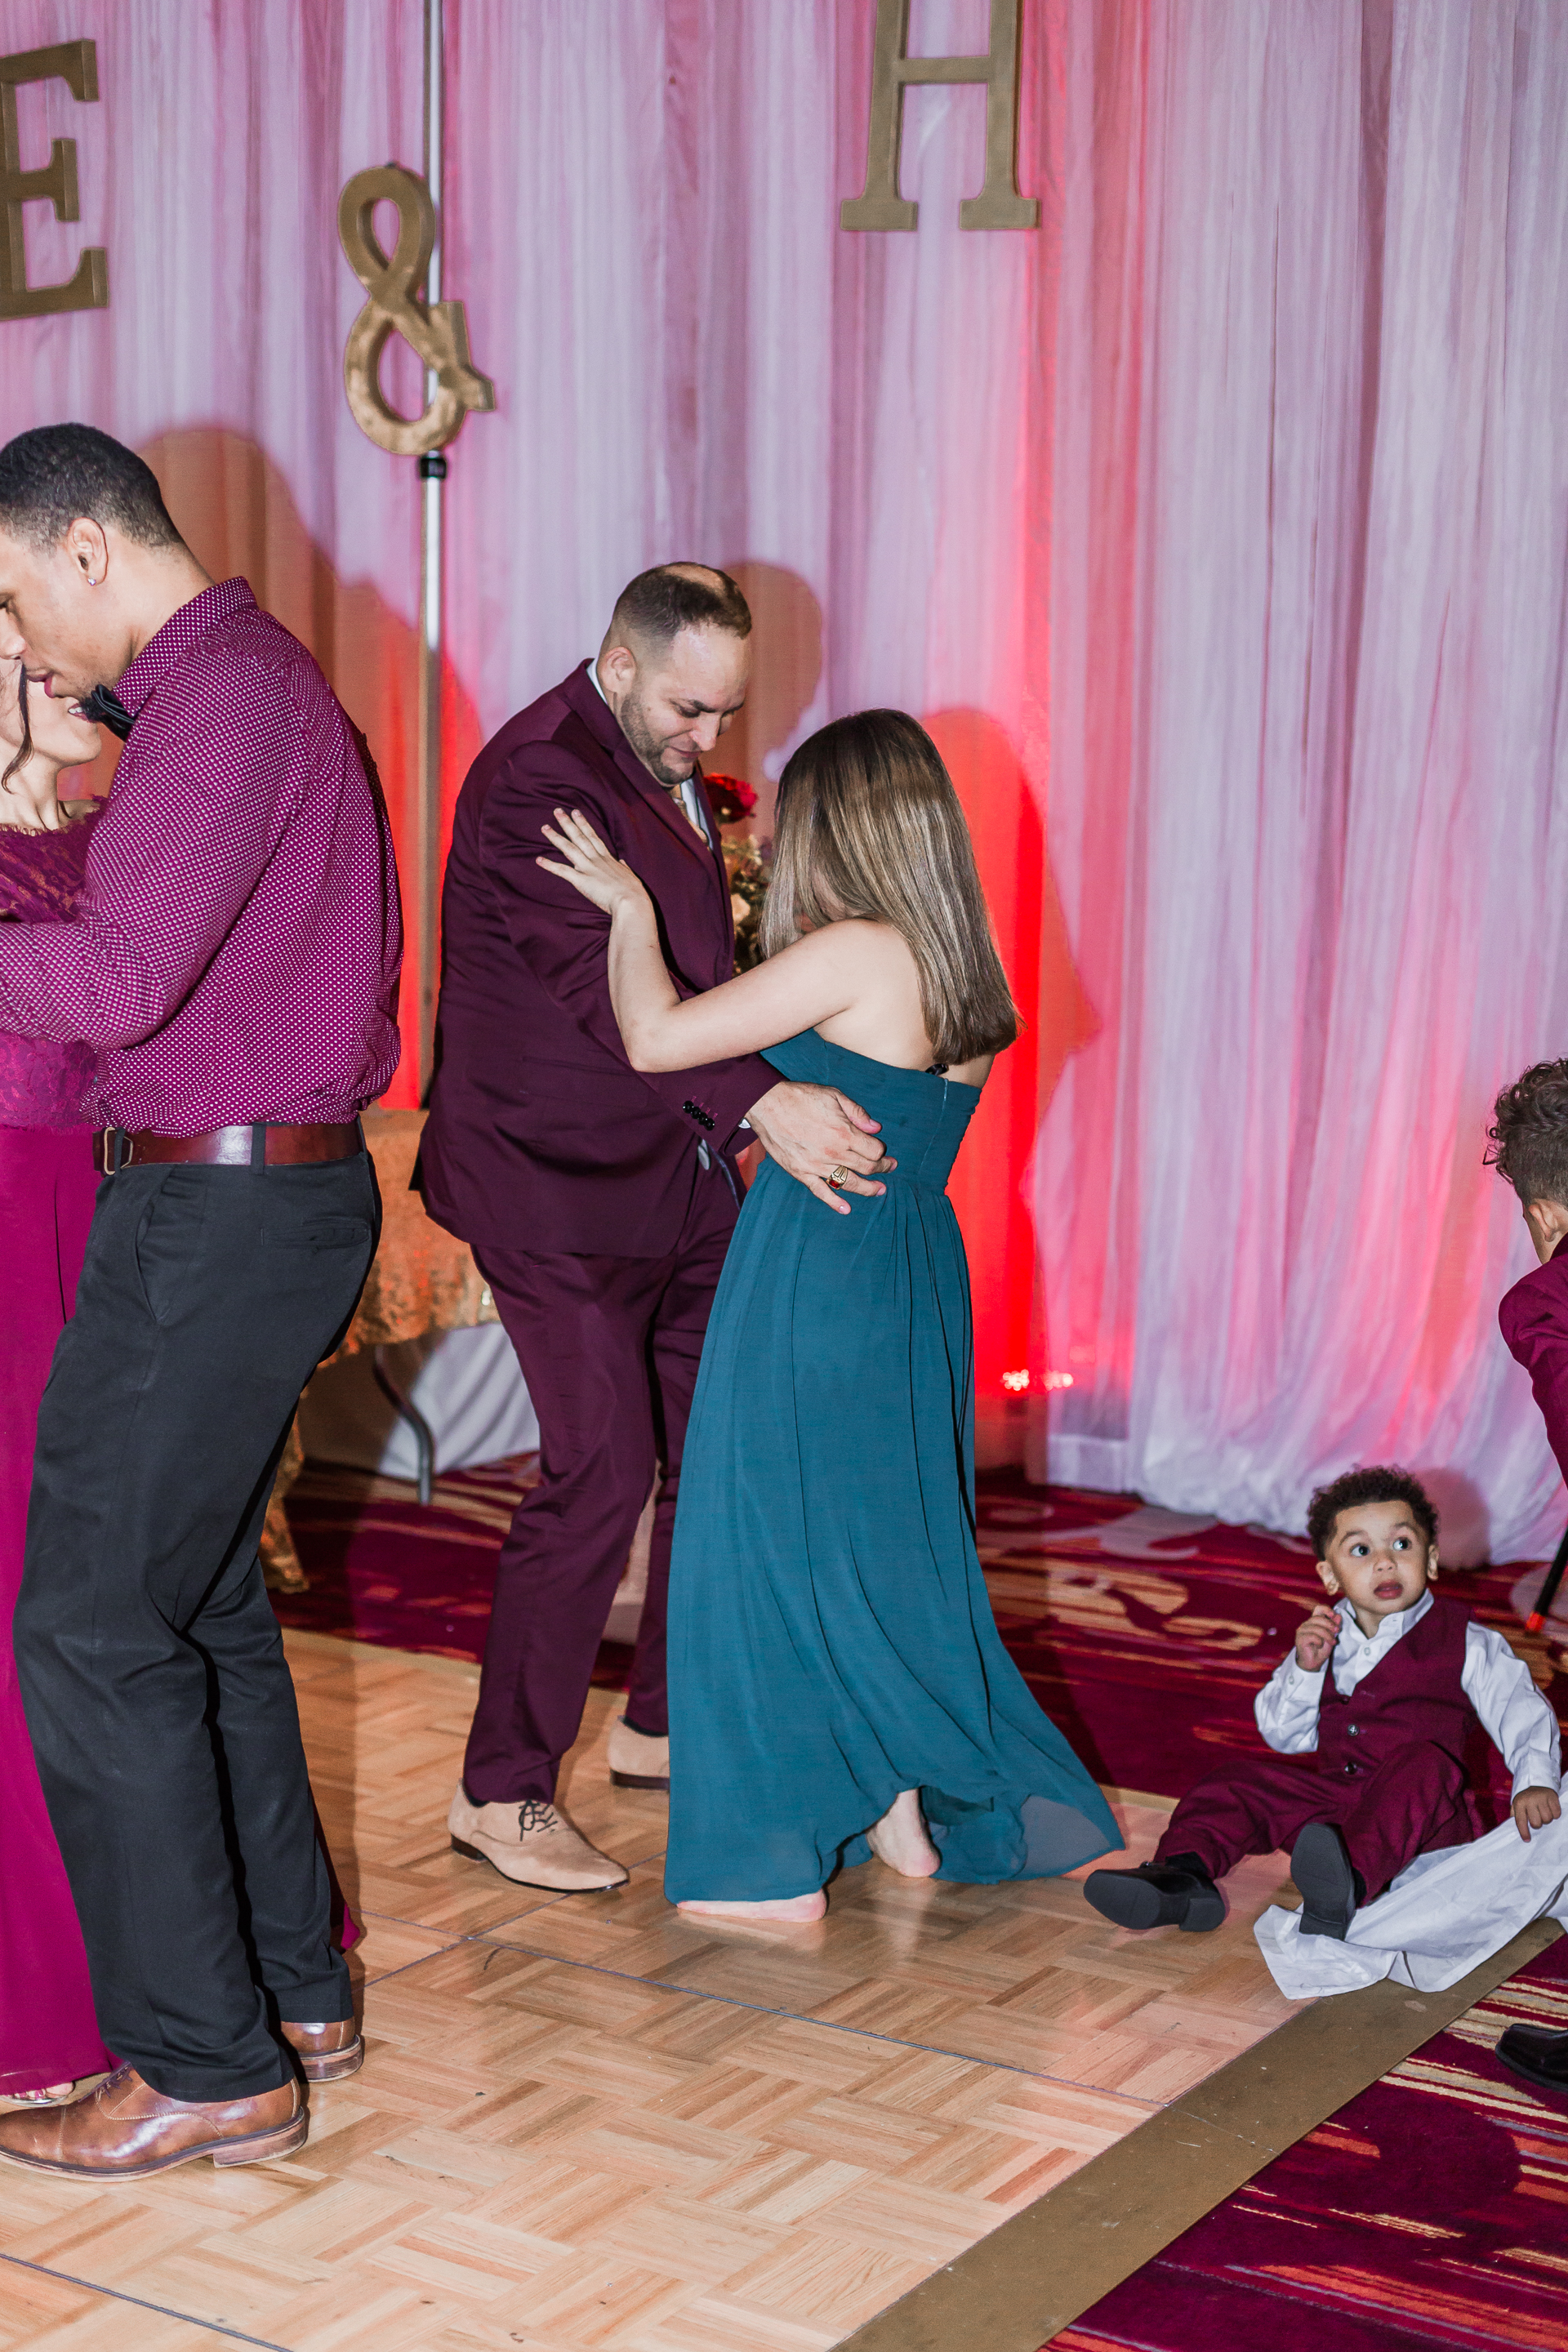 Crowne Plaza Hotel Reading Pennsylvania burgandy and gold  Wedding Lytle Photo Co (6 of 7).jpg